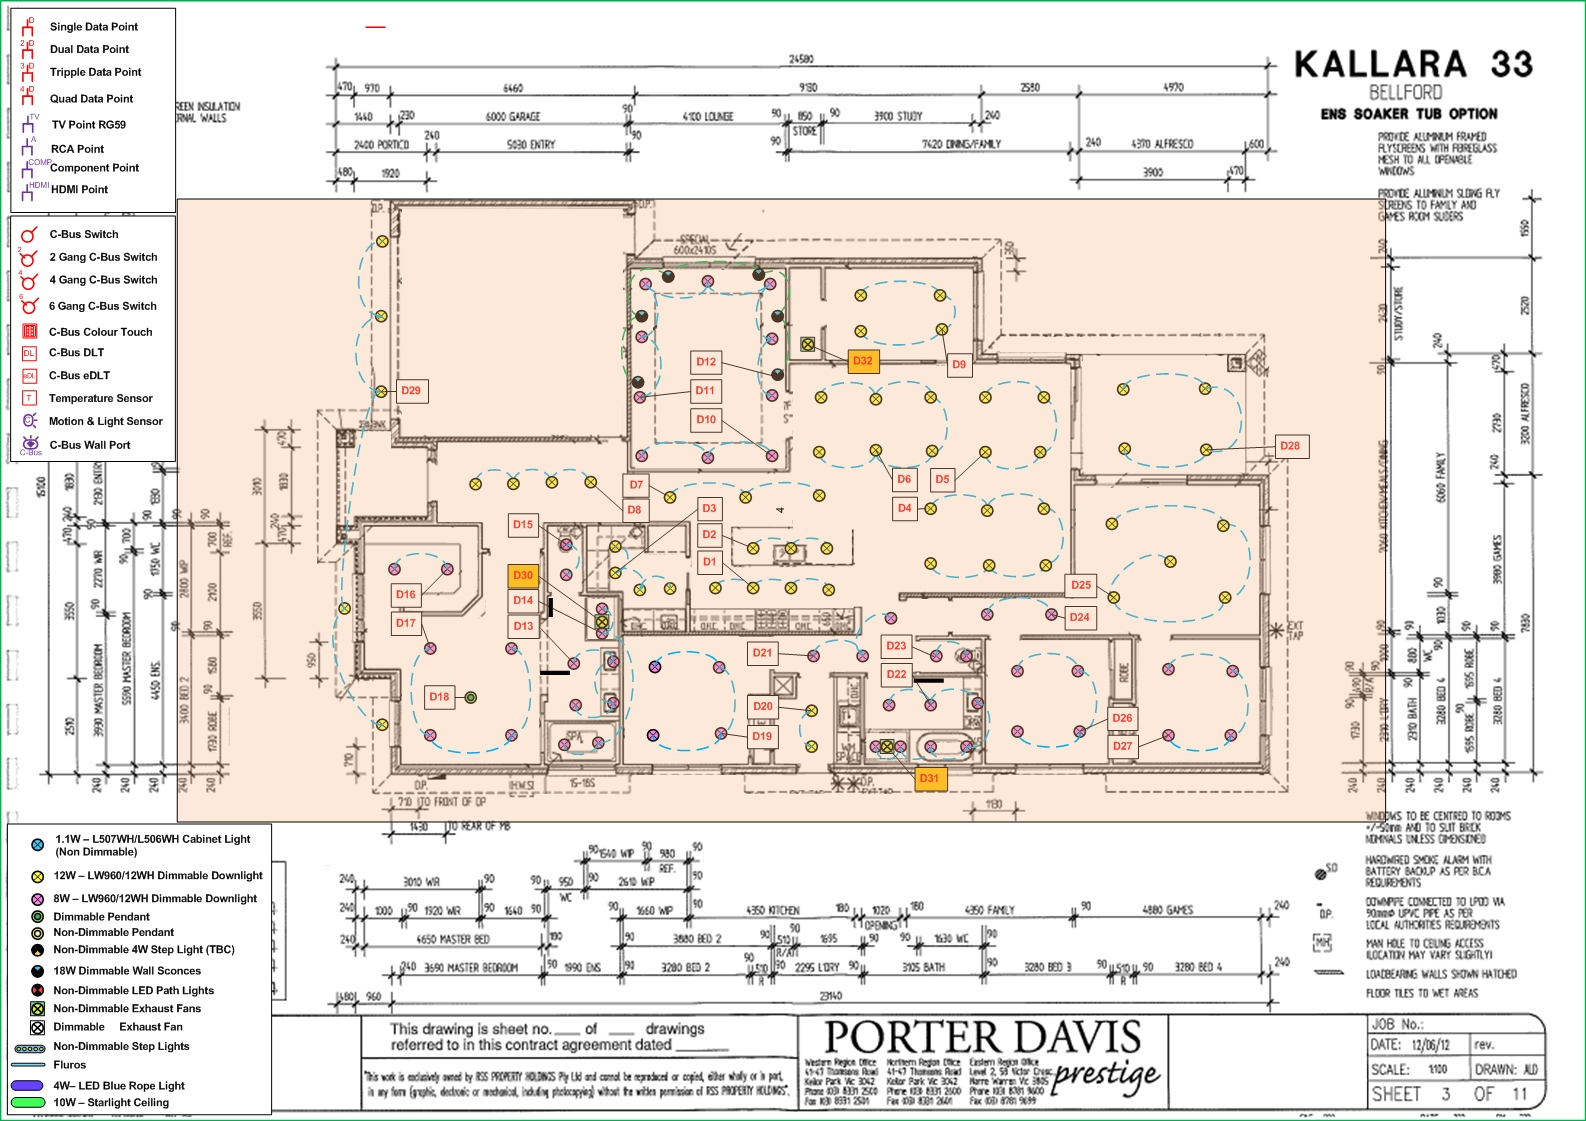 Kallara+Floor+Plans+ +u0026+Theater+ +Lighting+Dimmable diagrams c bus wiring diagram c bus wiring diagram nilzanet ( collins bus wiring diagram at bayanpartner.co